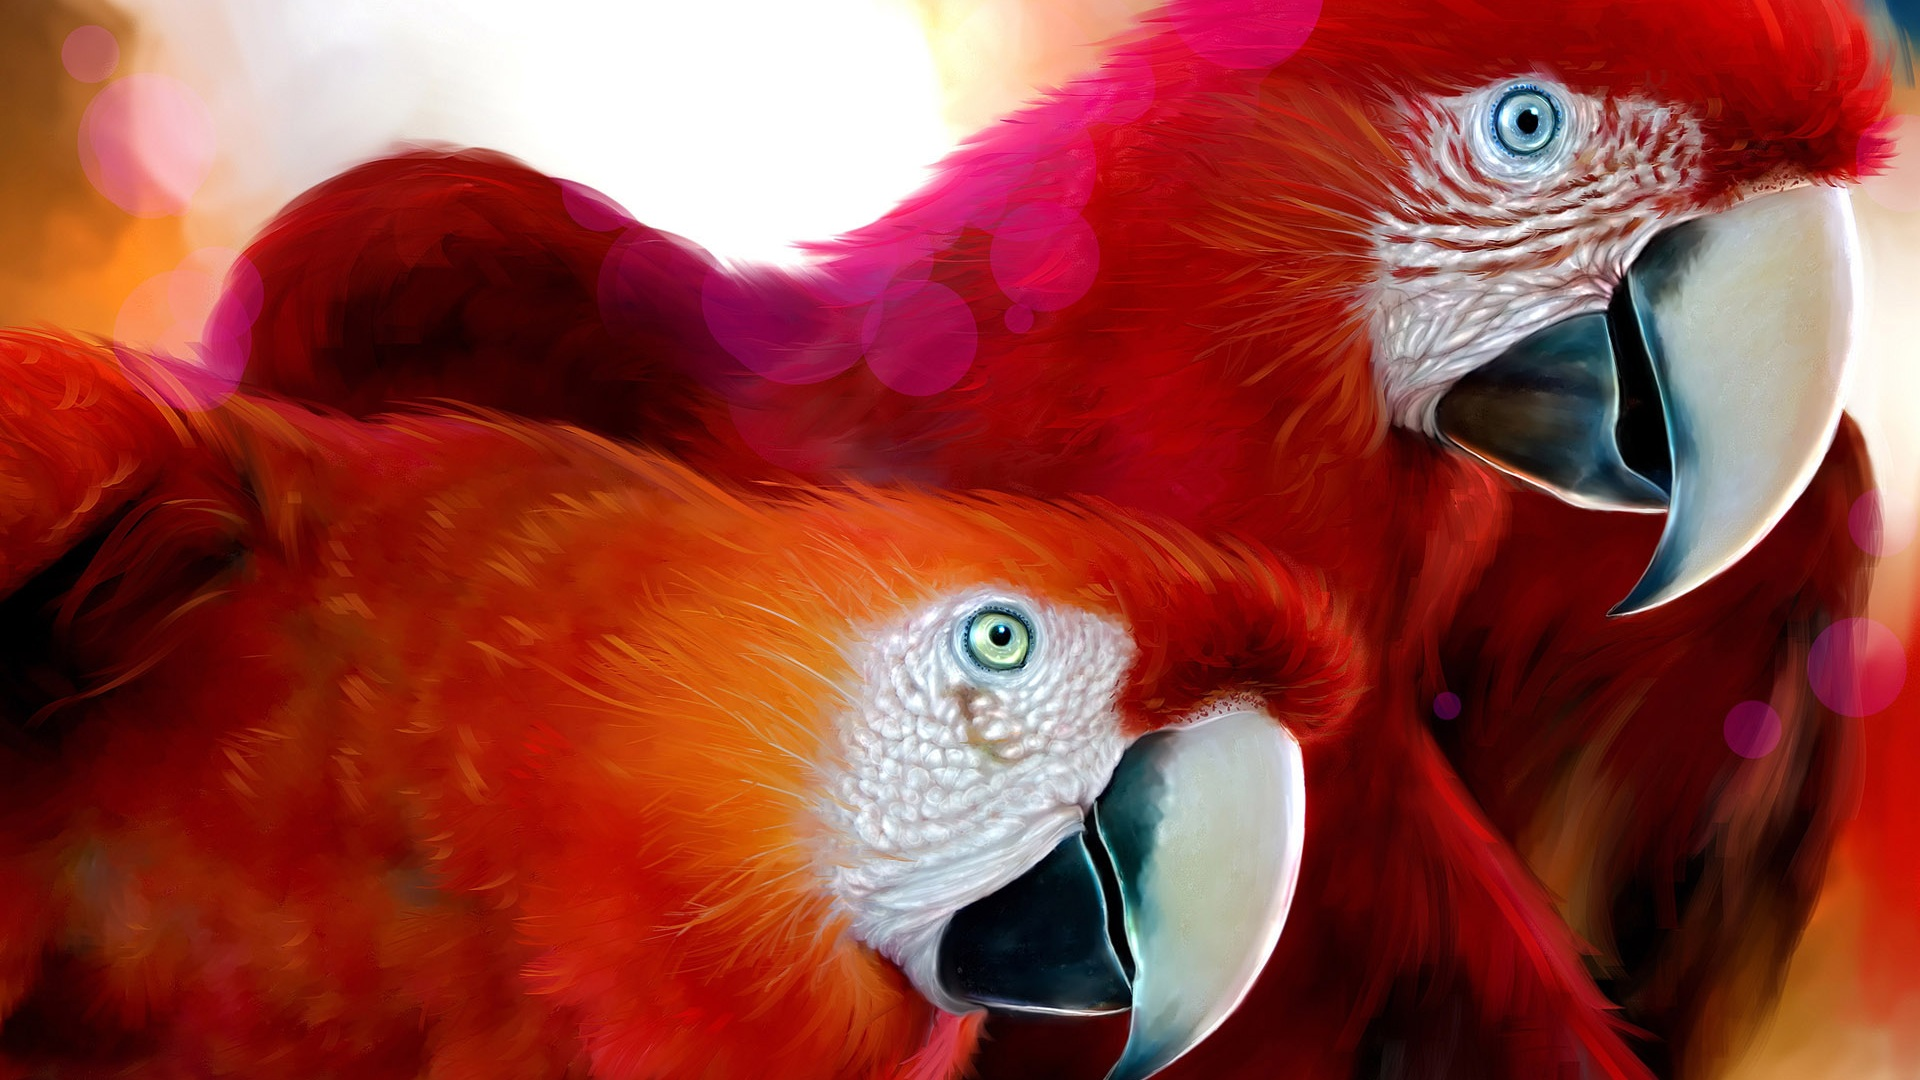 http://best-wallpaper.net/wallpaper/1920x1080/1105/A-pair-of-red-parrot_1920x1080.jpg